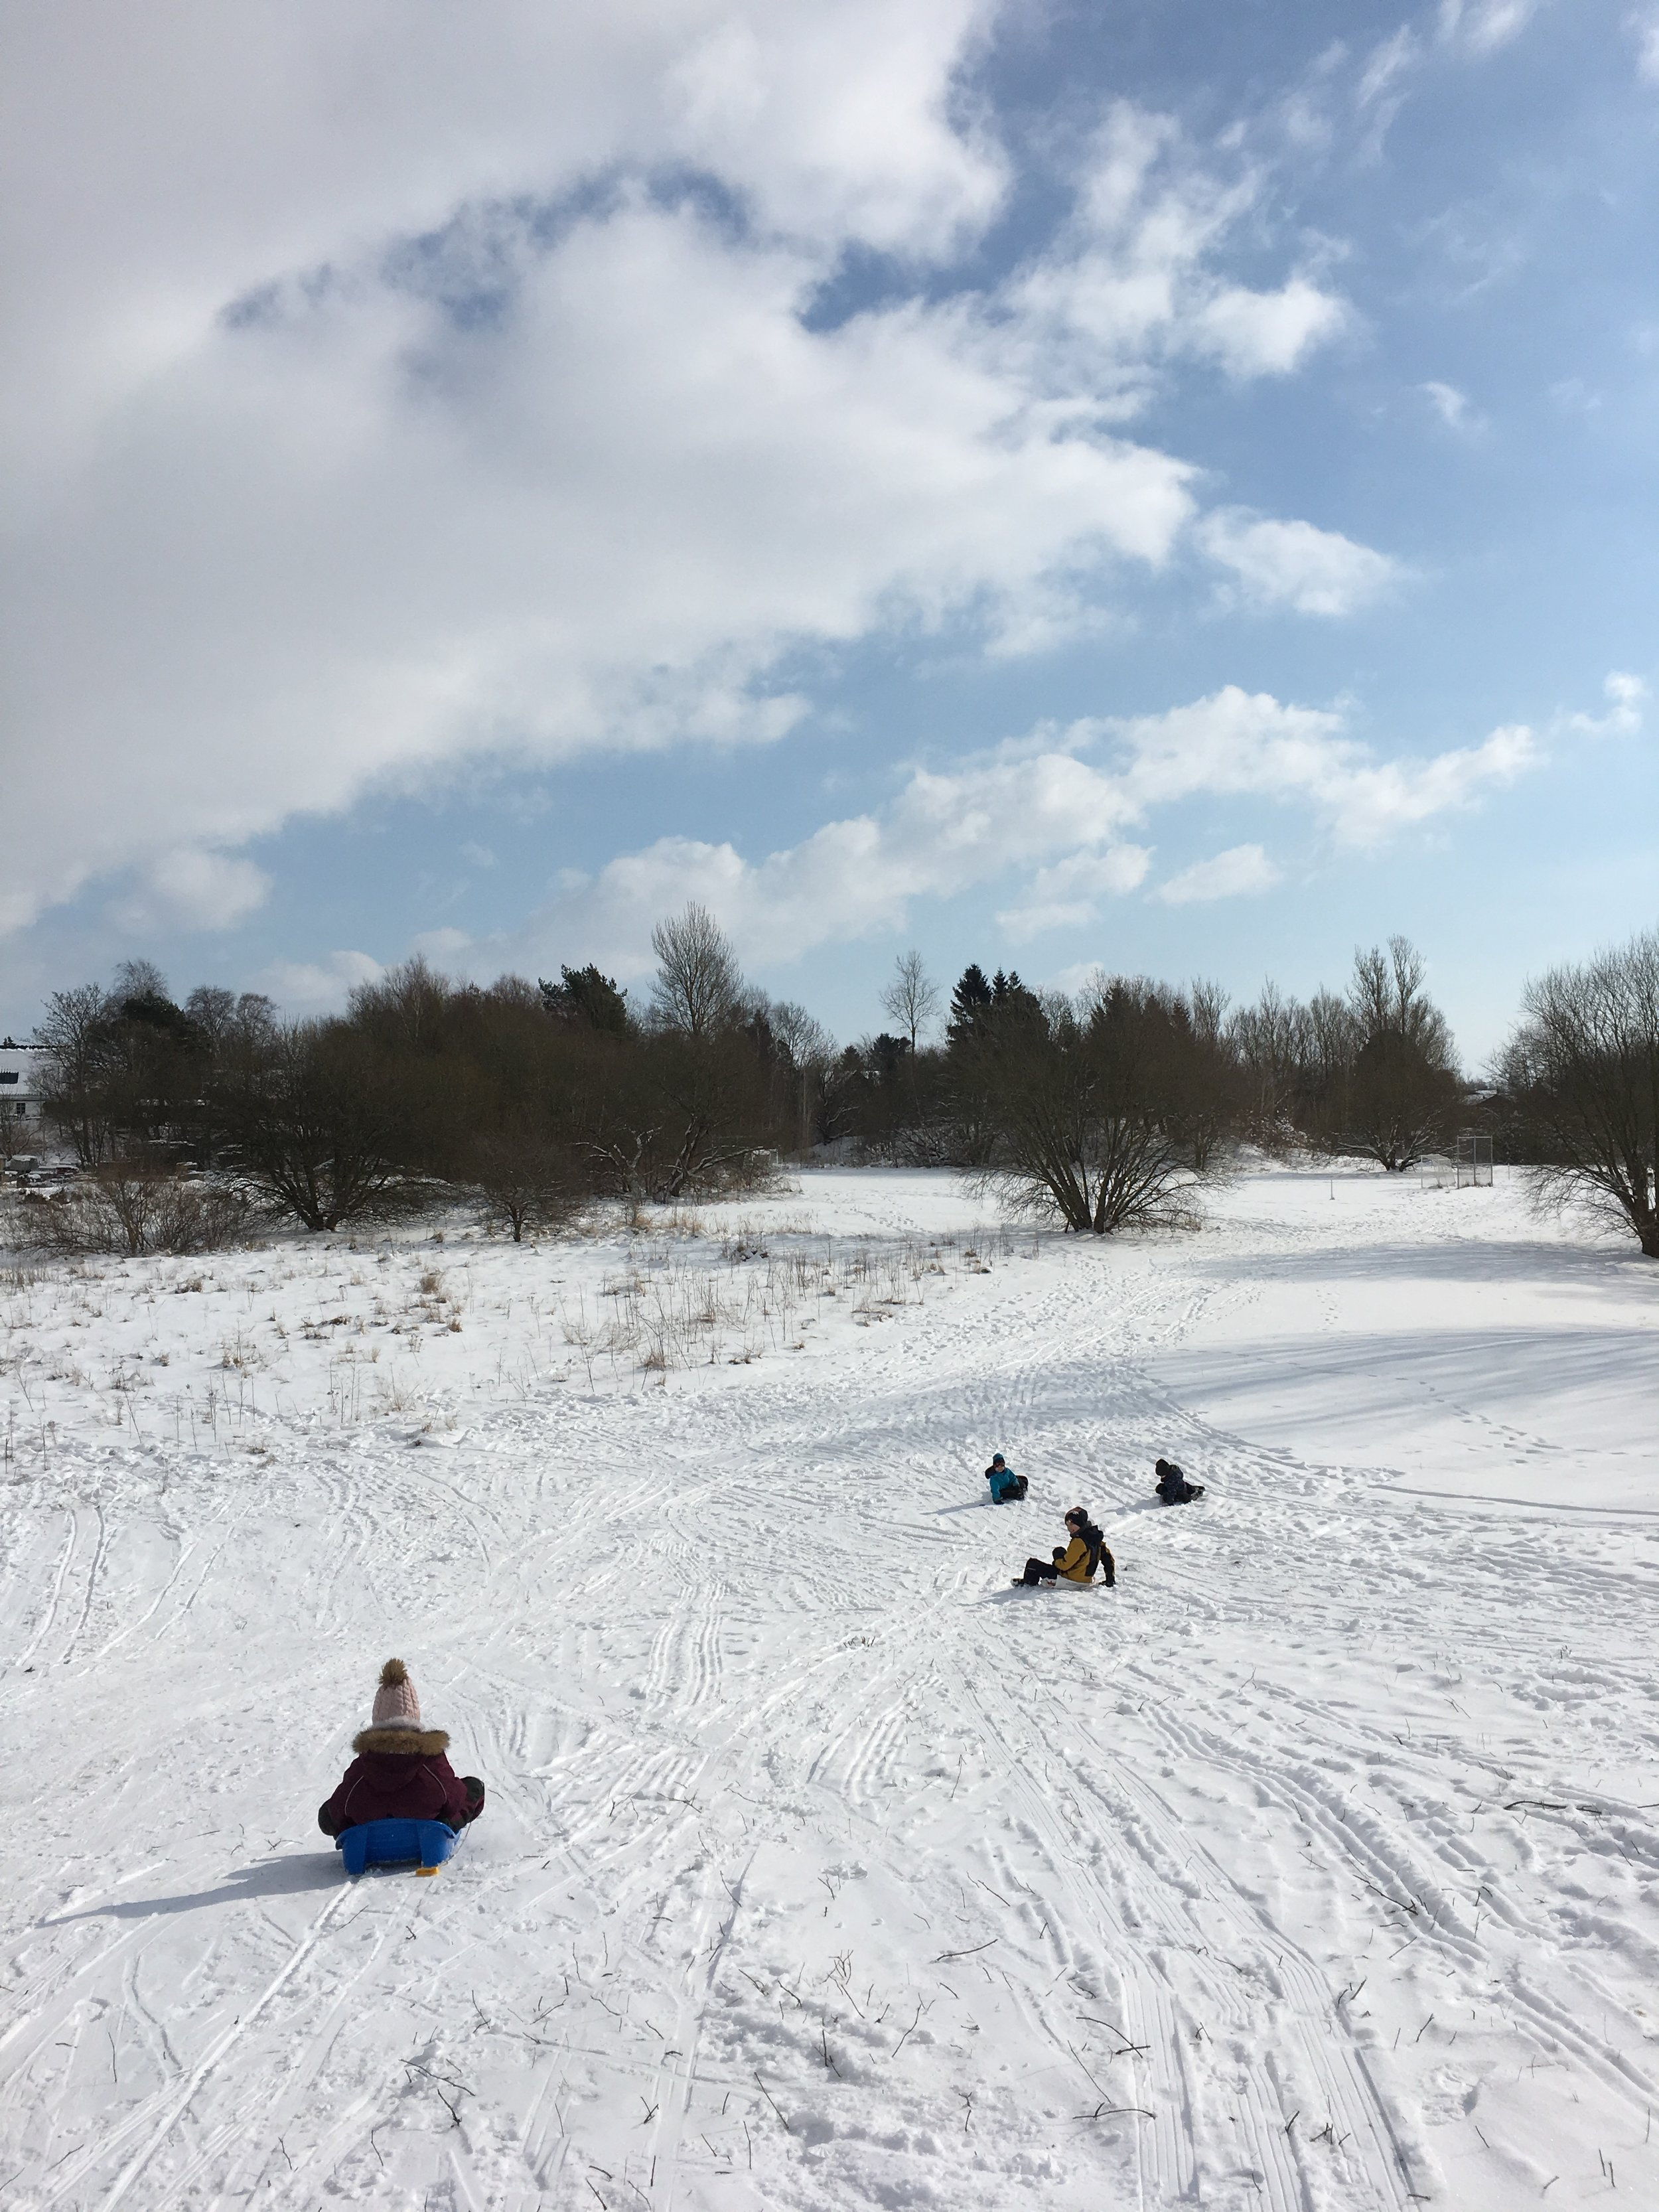 The kids at the slope next to our home in Sweden